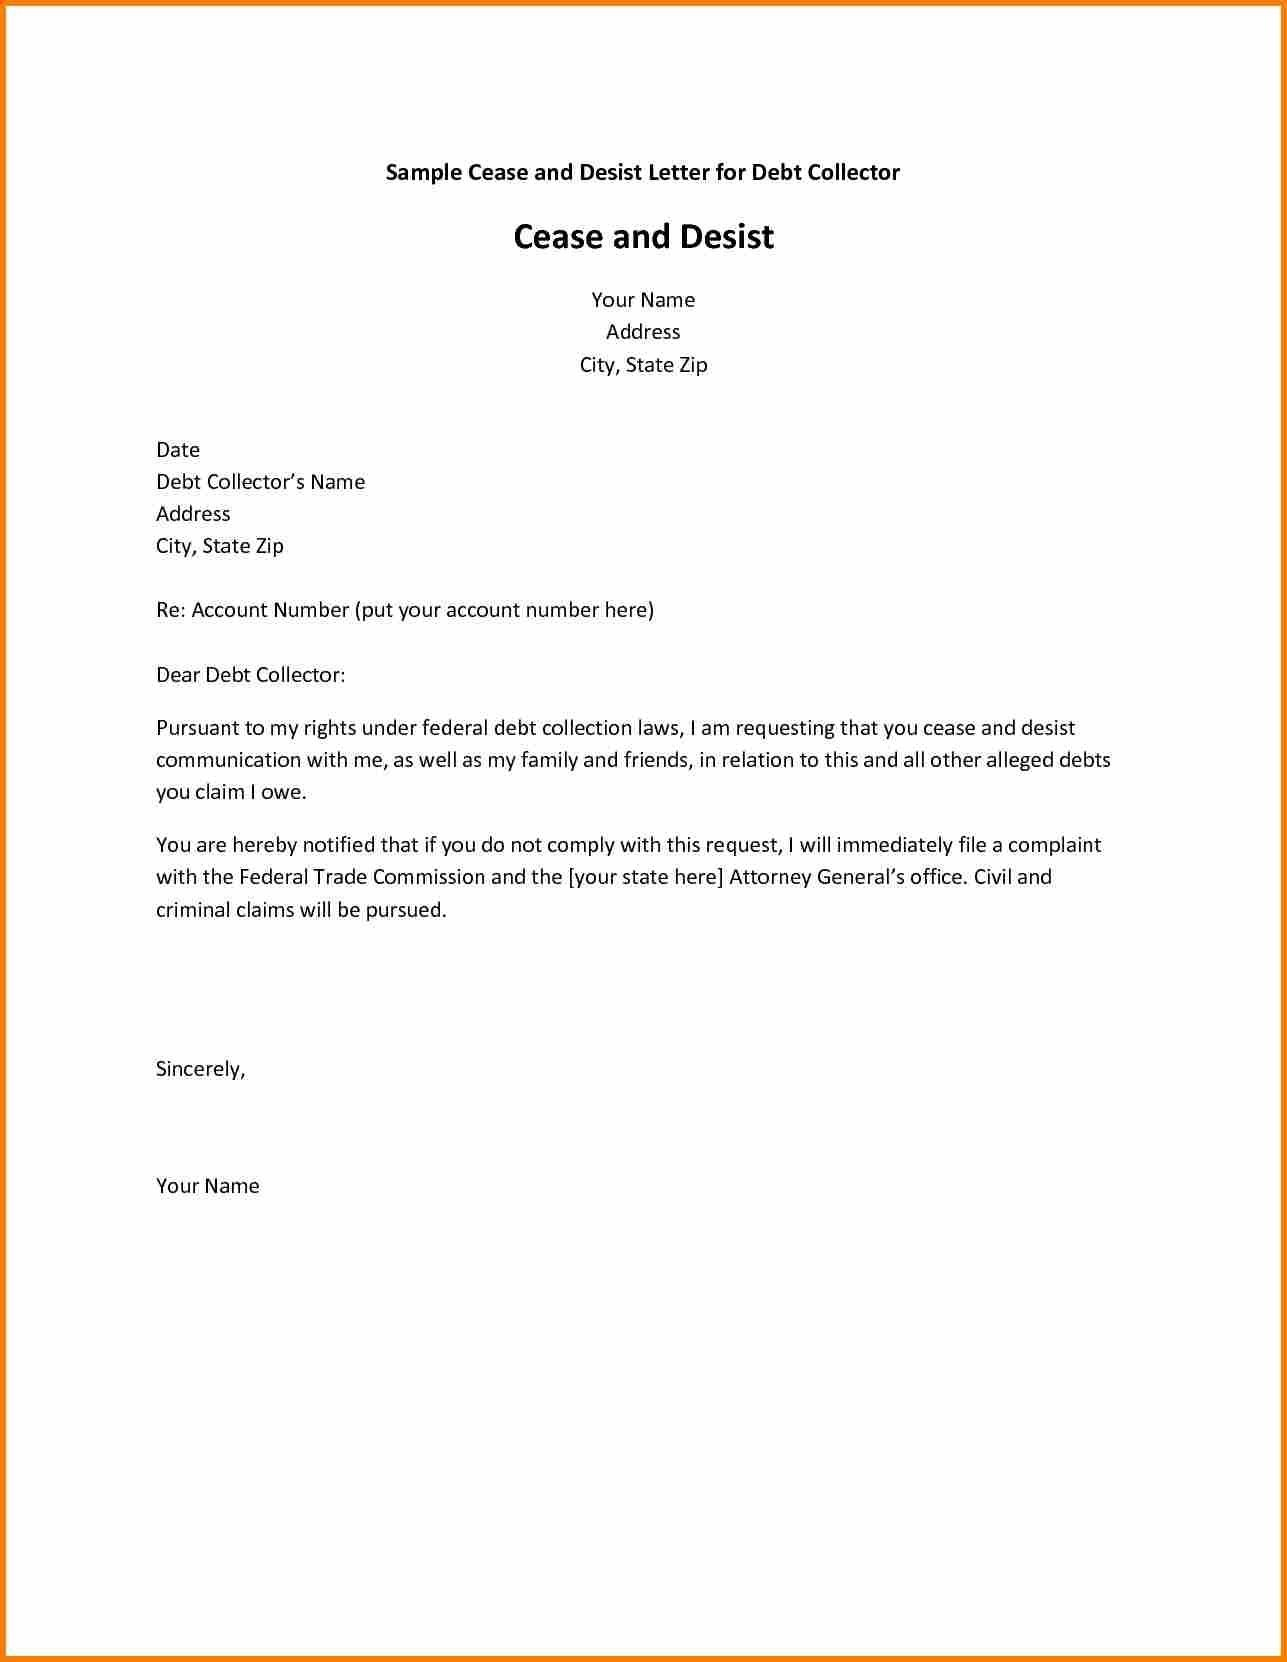 creditor cease and desist letter template Collection-Debt Collection Cease and Desist Letter Template Copy Jury Duty Excuse Letter Refrence Cease and Desist 18-h